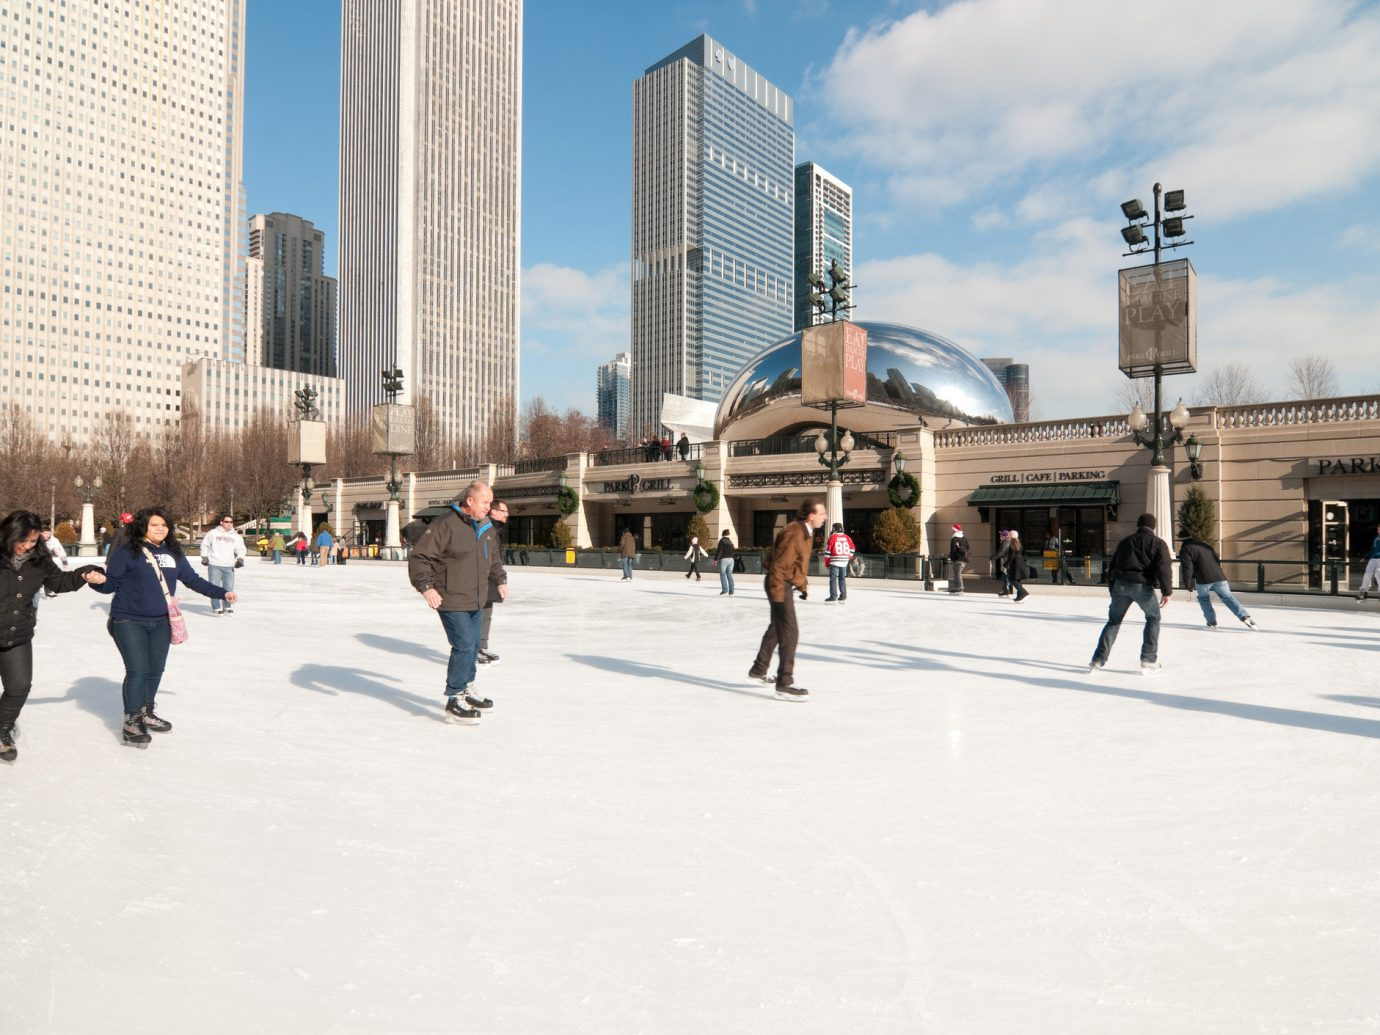 Trip Ideas Weekend Getaways outdoor sky urban area ice rink Winter Ice Skating City rink building ice daytime Downtown skating people recreation fun plaza winter sport snow tourism tree leisure freezing vacation pedestrian town square